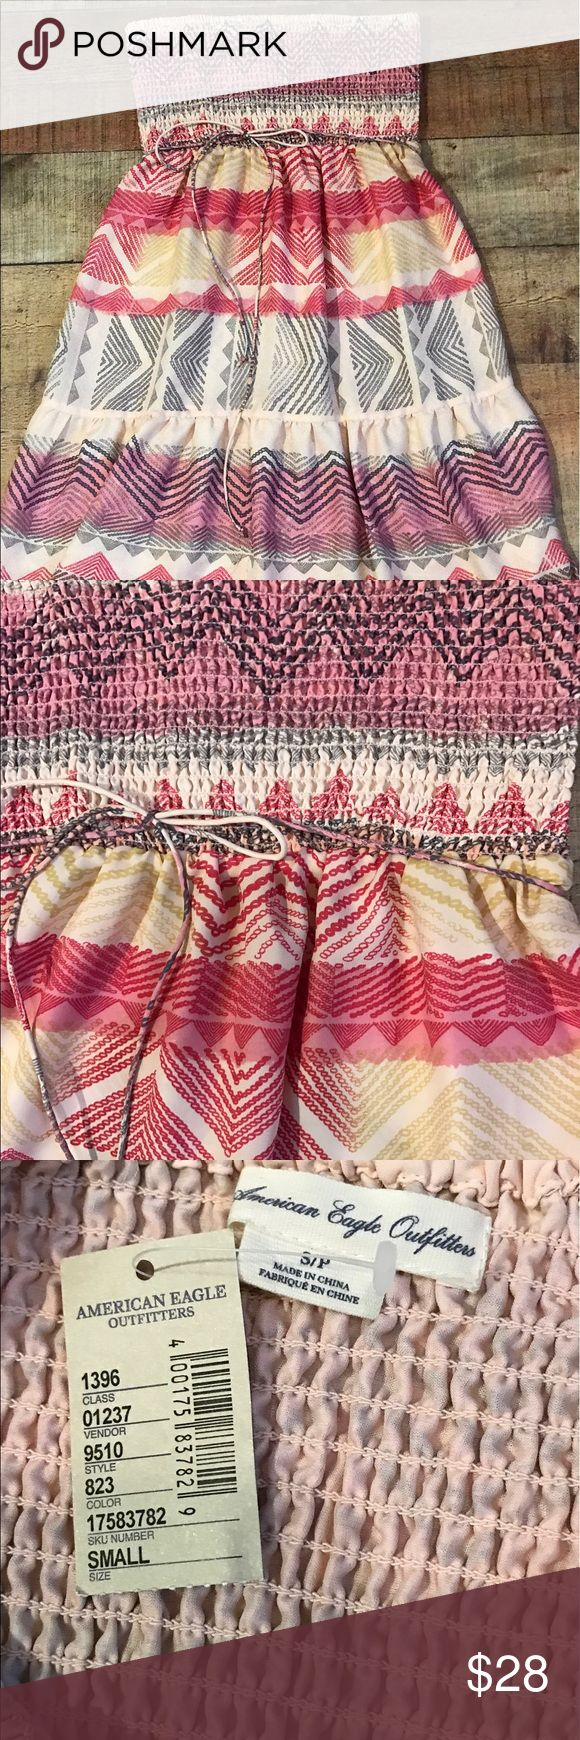 American eagle short strapless summer dress The Aztec print of this dress is so pretty. Strapless top and flowy bottom would be so comfy for a summer concert or dinner at the beach! Unworn, NWT. American Eagle Outfitters Dresses Strapless